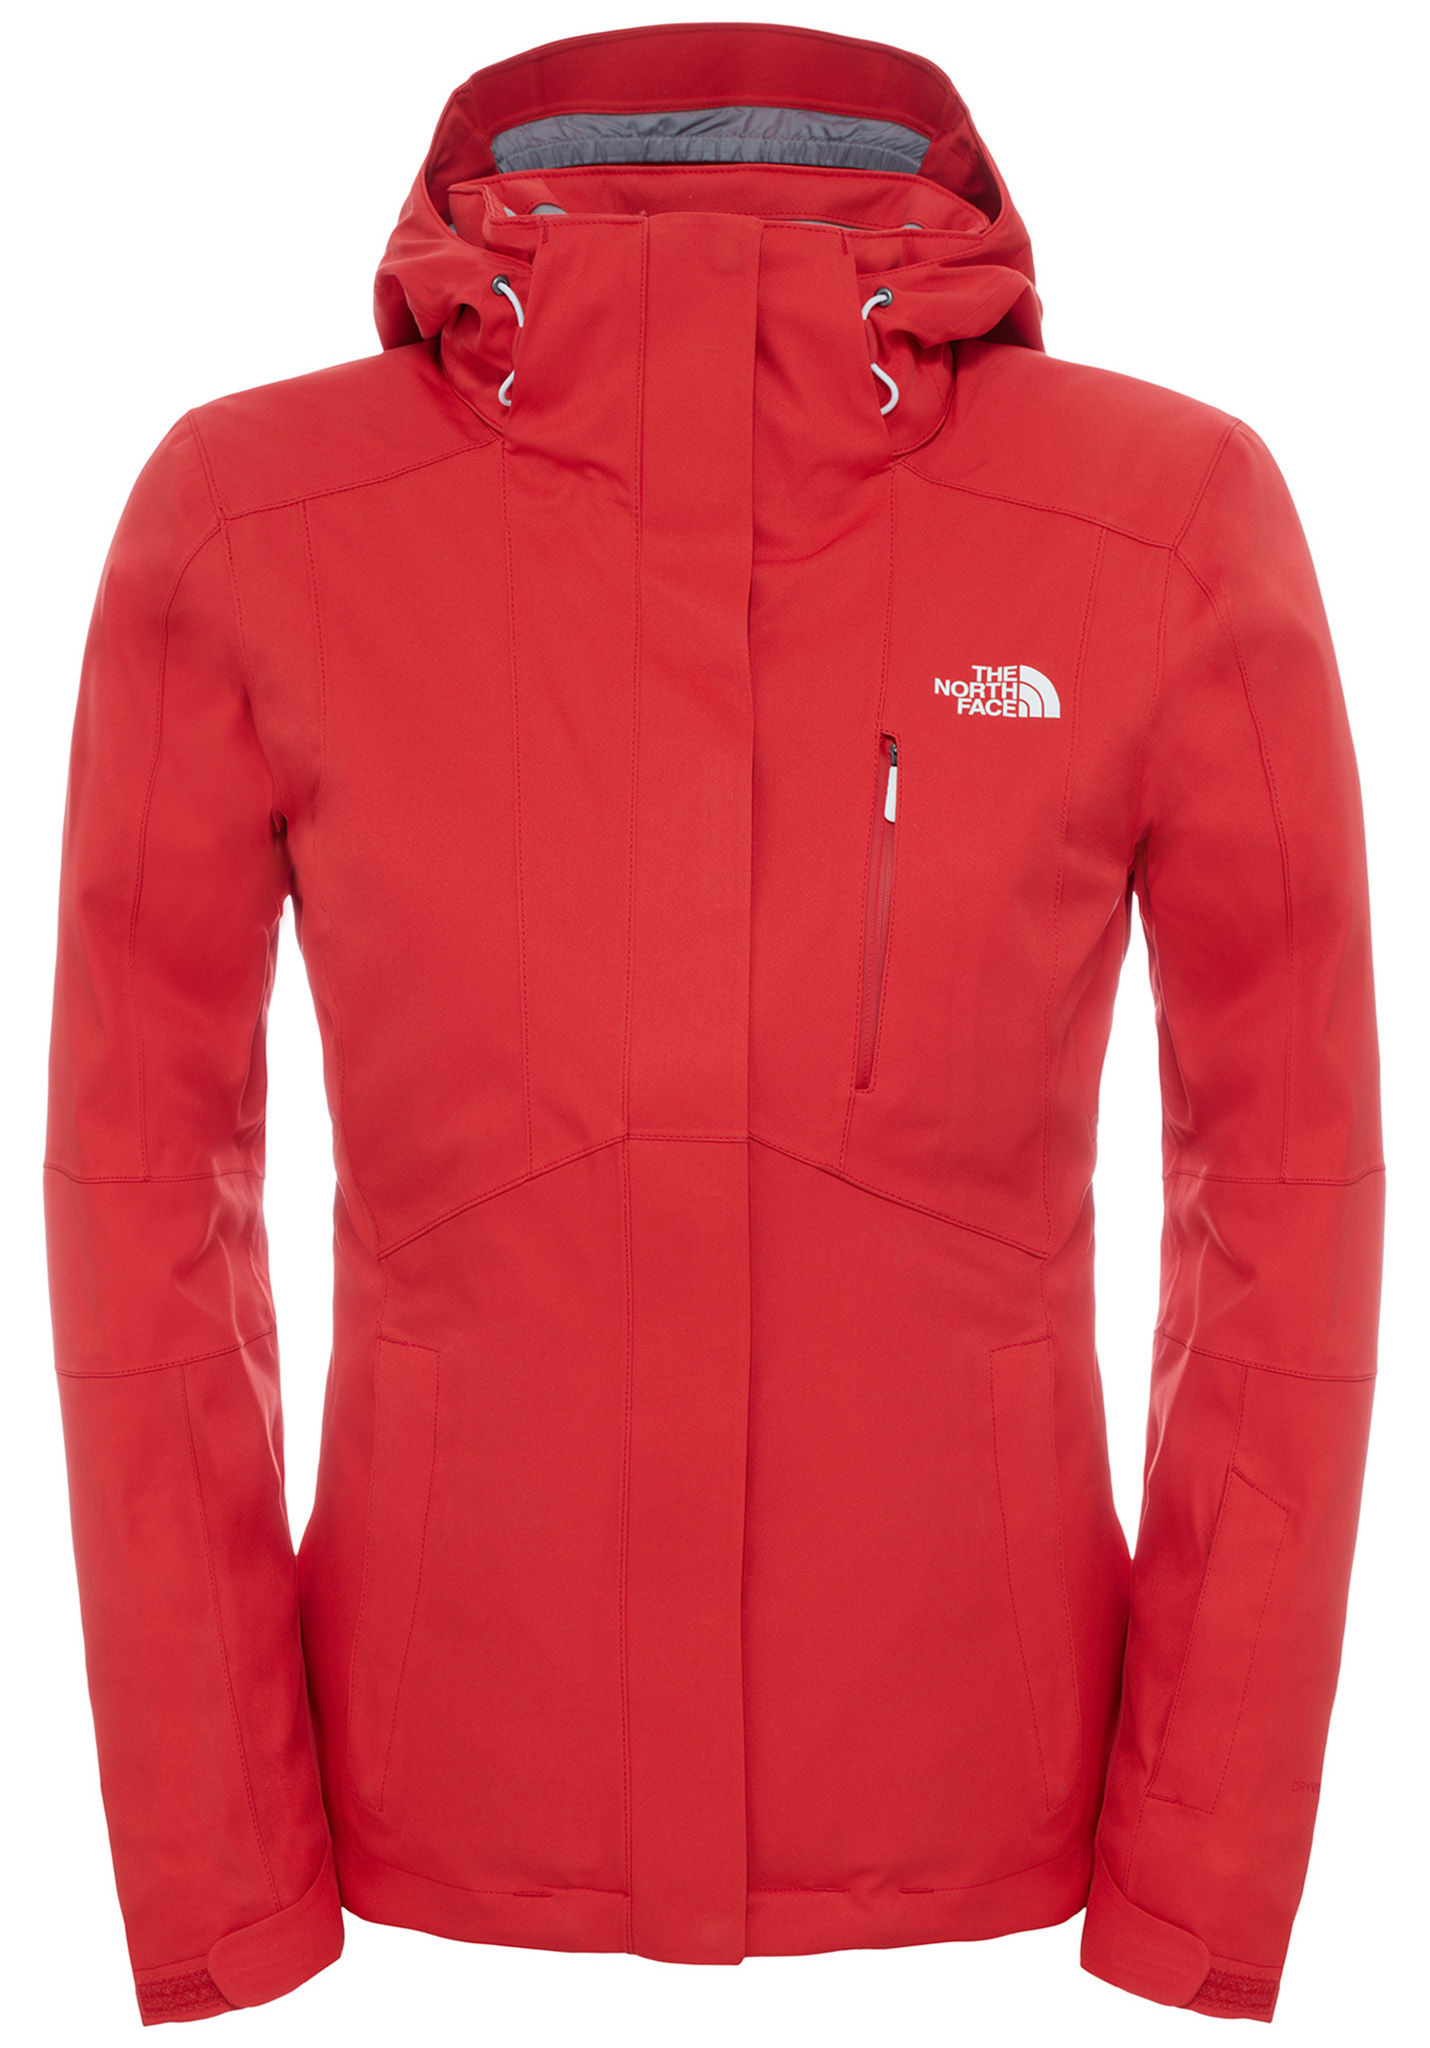 Sports Face The Rood Ravina Dames Jas Voor North Outdoor Planet pqqwz7